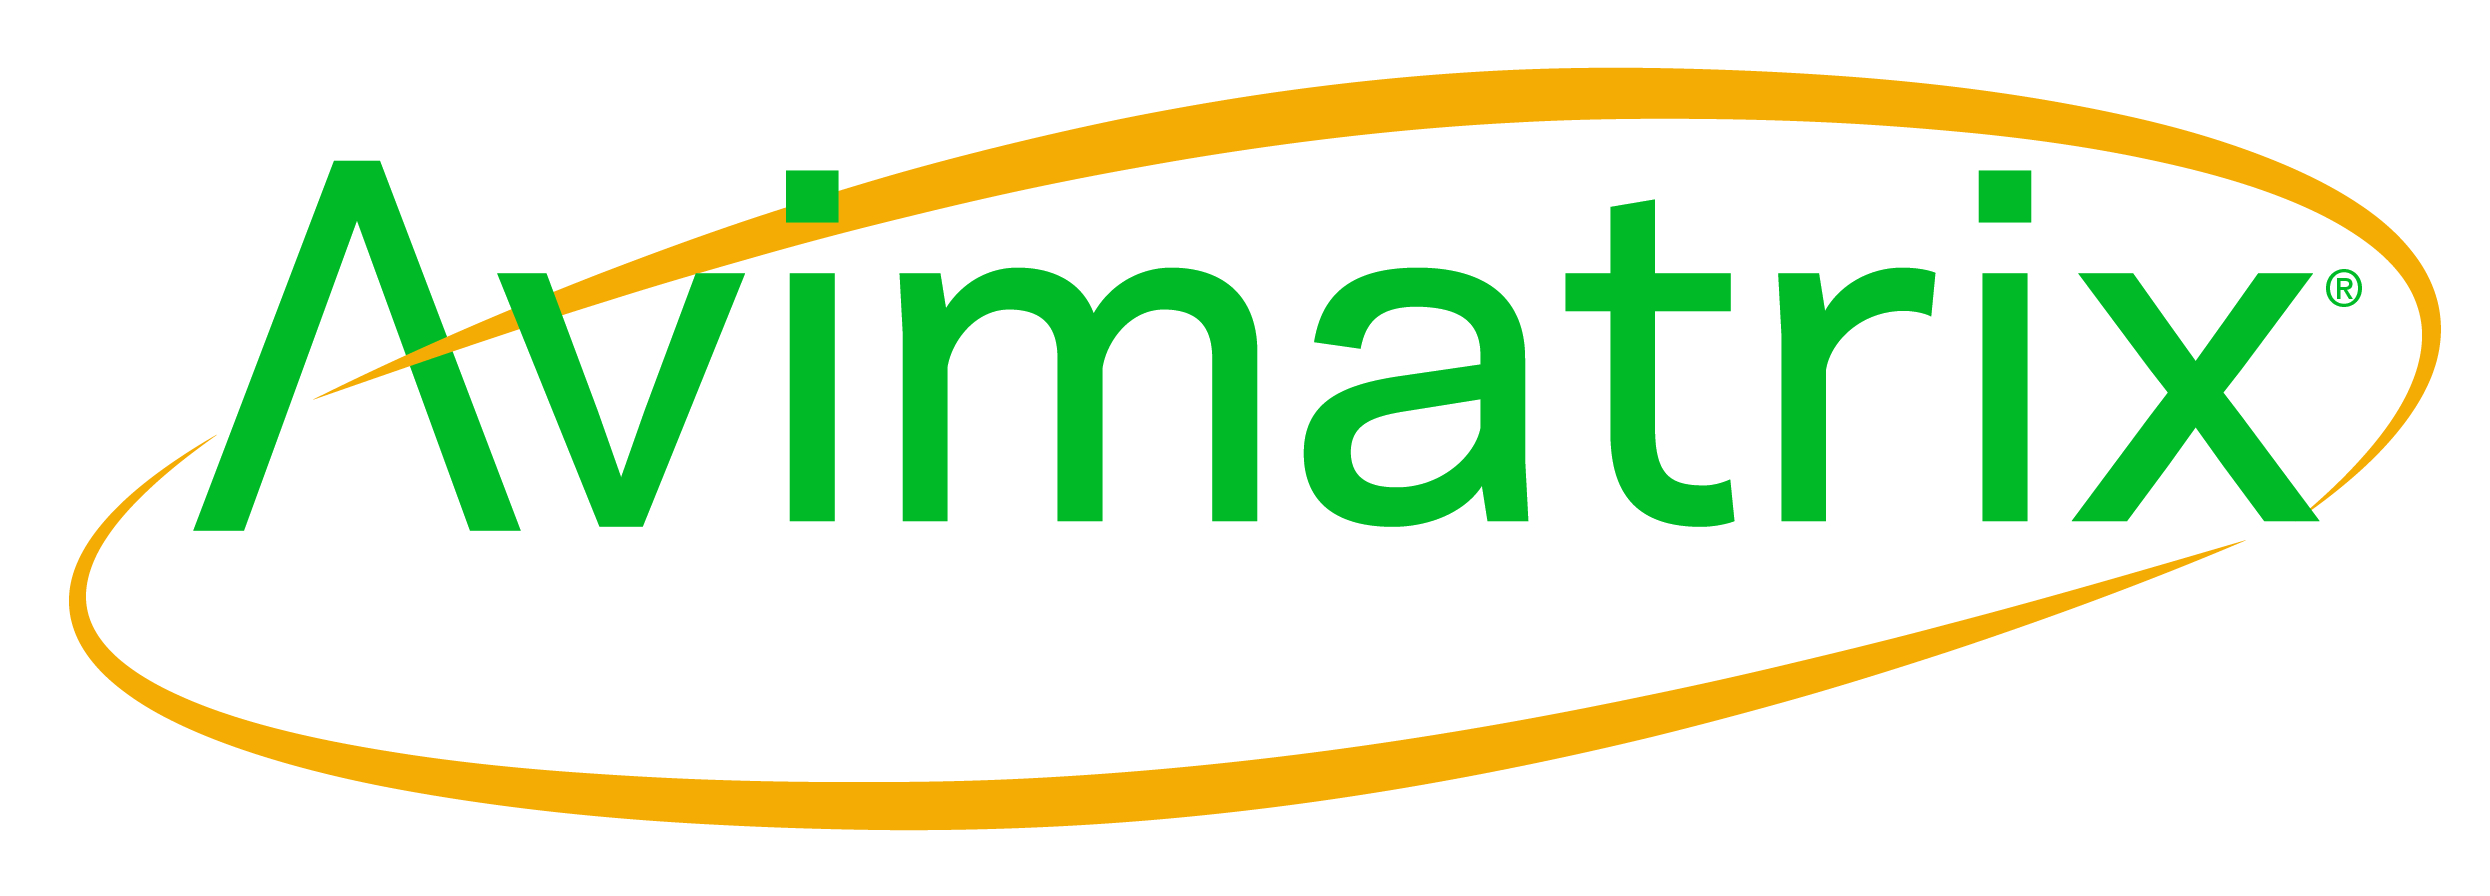 EFSA Confirms The Efficacy And Safety Of AVIMATRIX®